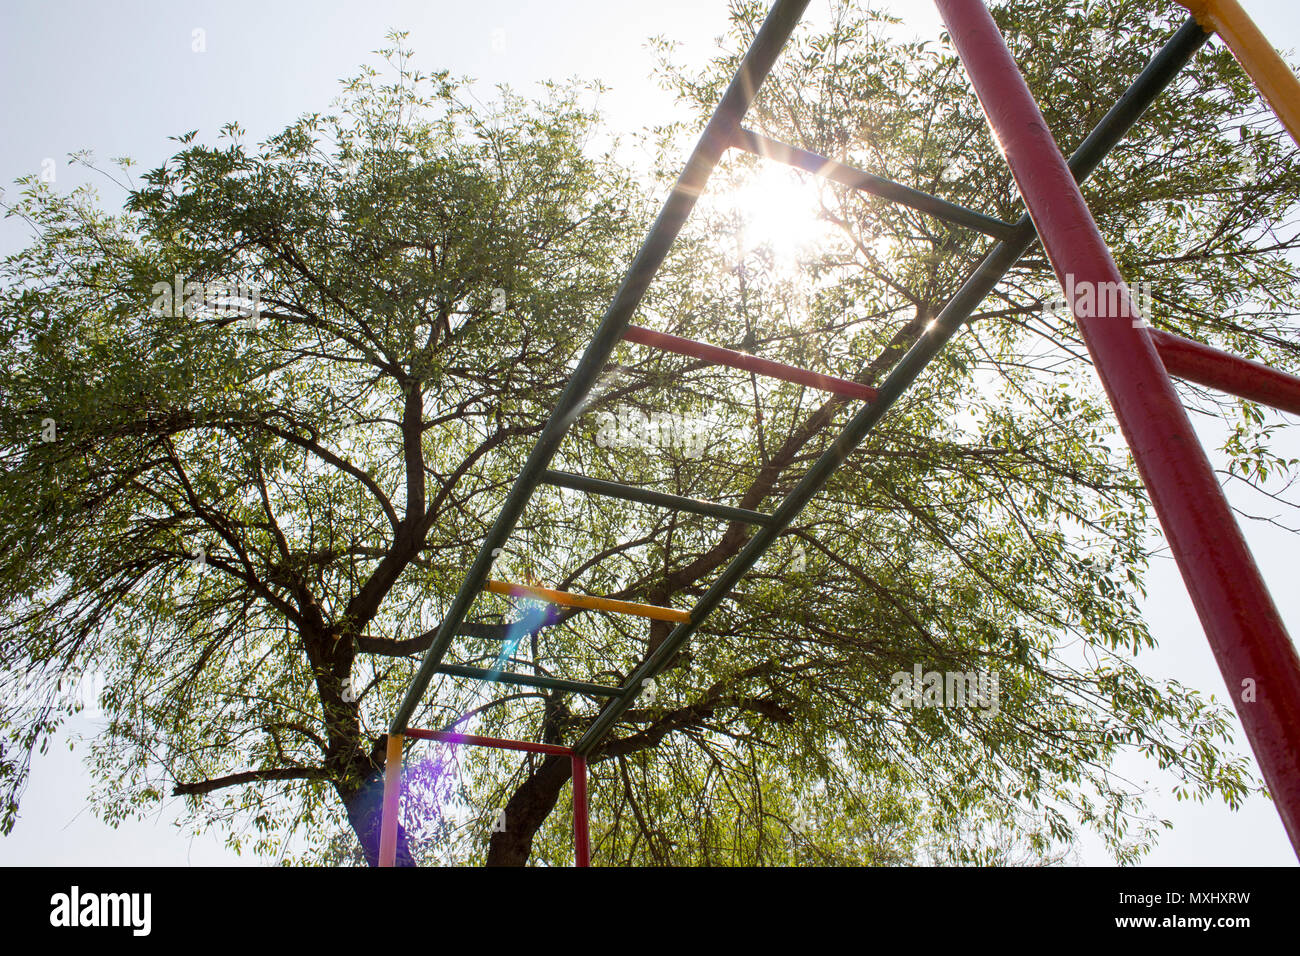 Colorful horizontal laddder or monkey bars below the sunlight in a park, next to a big tree. - Stock Image